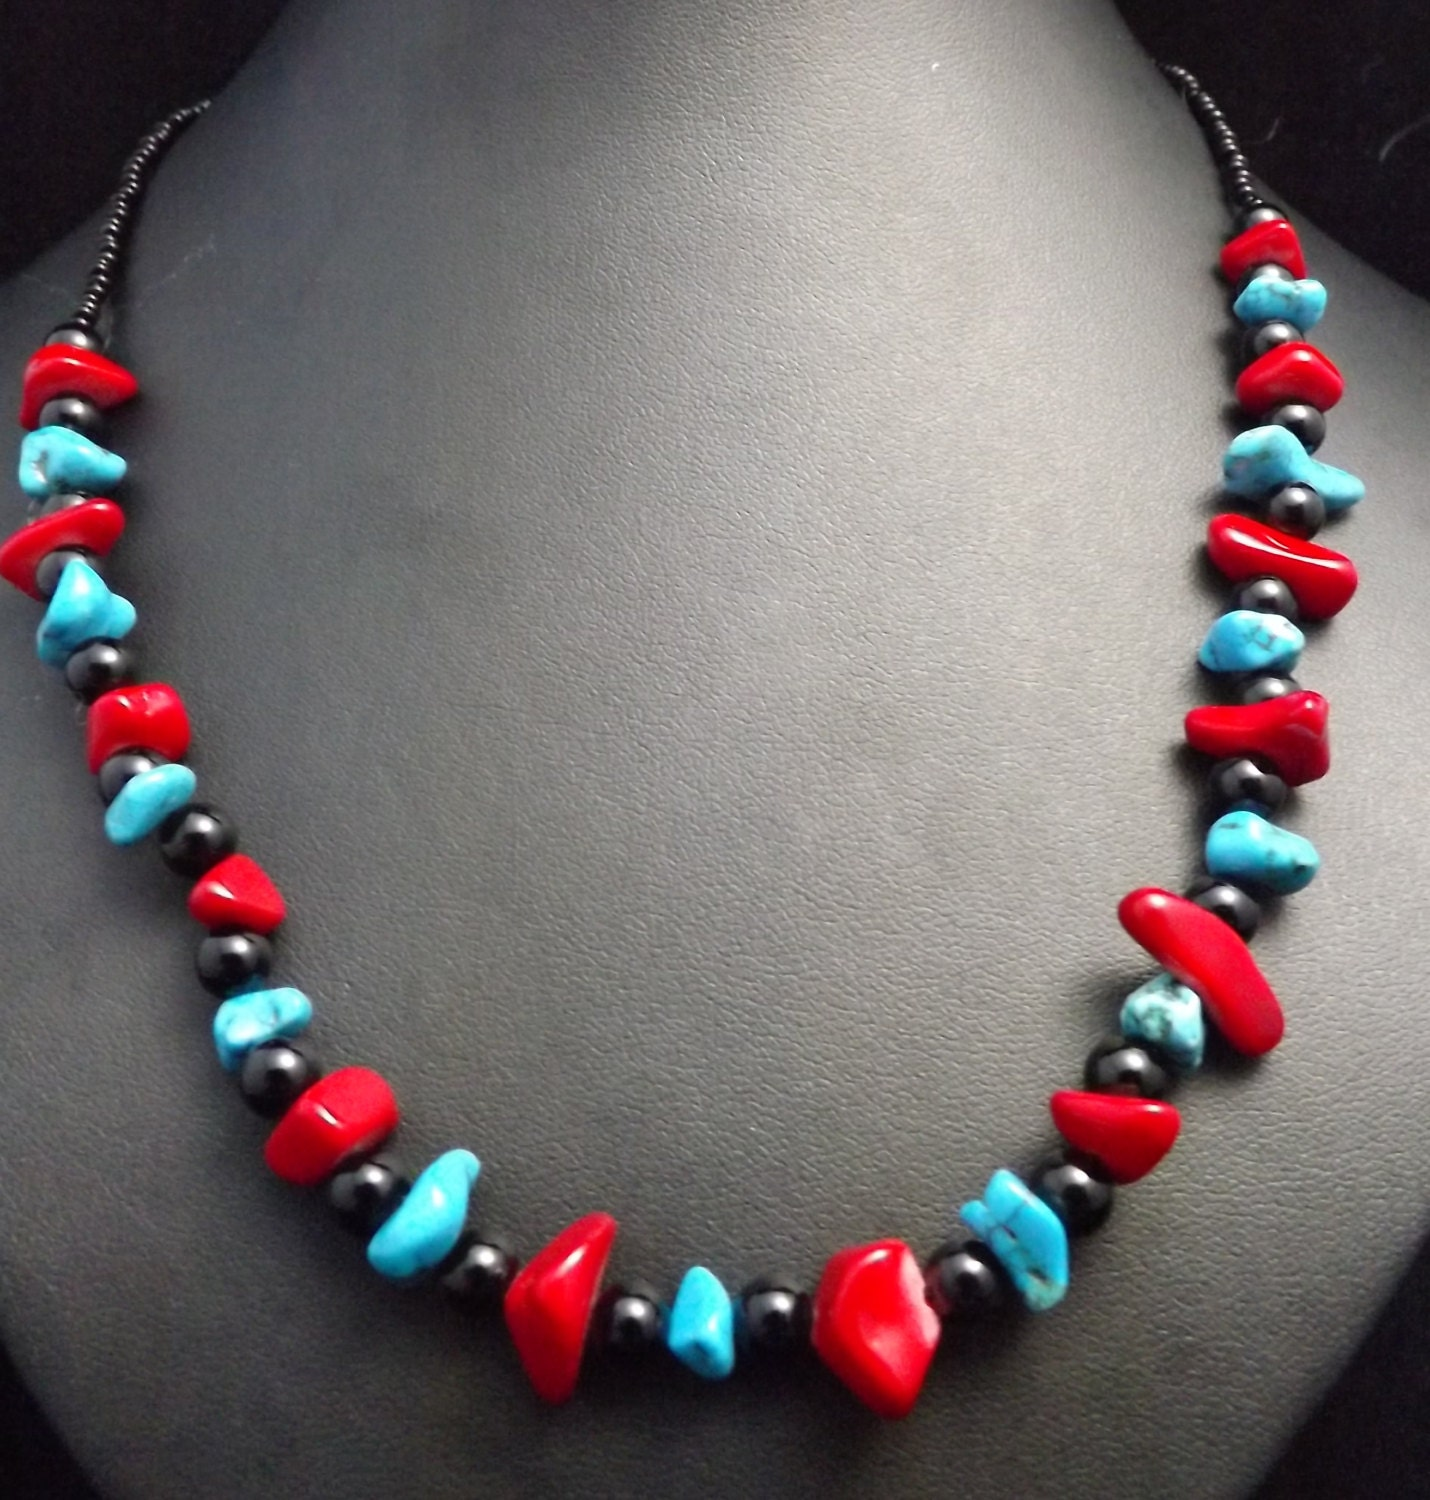 Red Jasper Turquoise Obsidian semi precioussemi precious stone valentine Day  gemstone necklacewedding jewellery hippie necklace